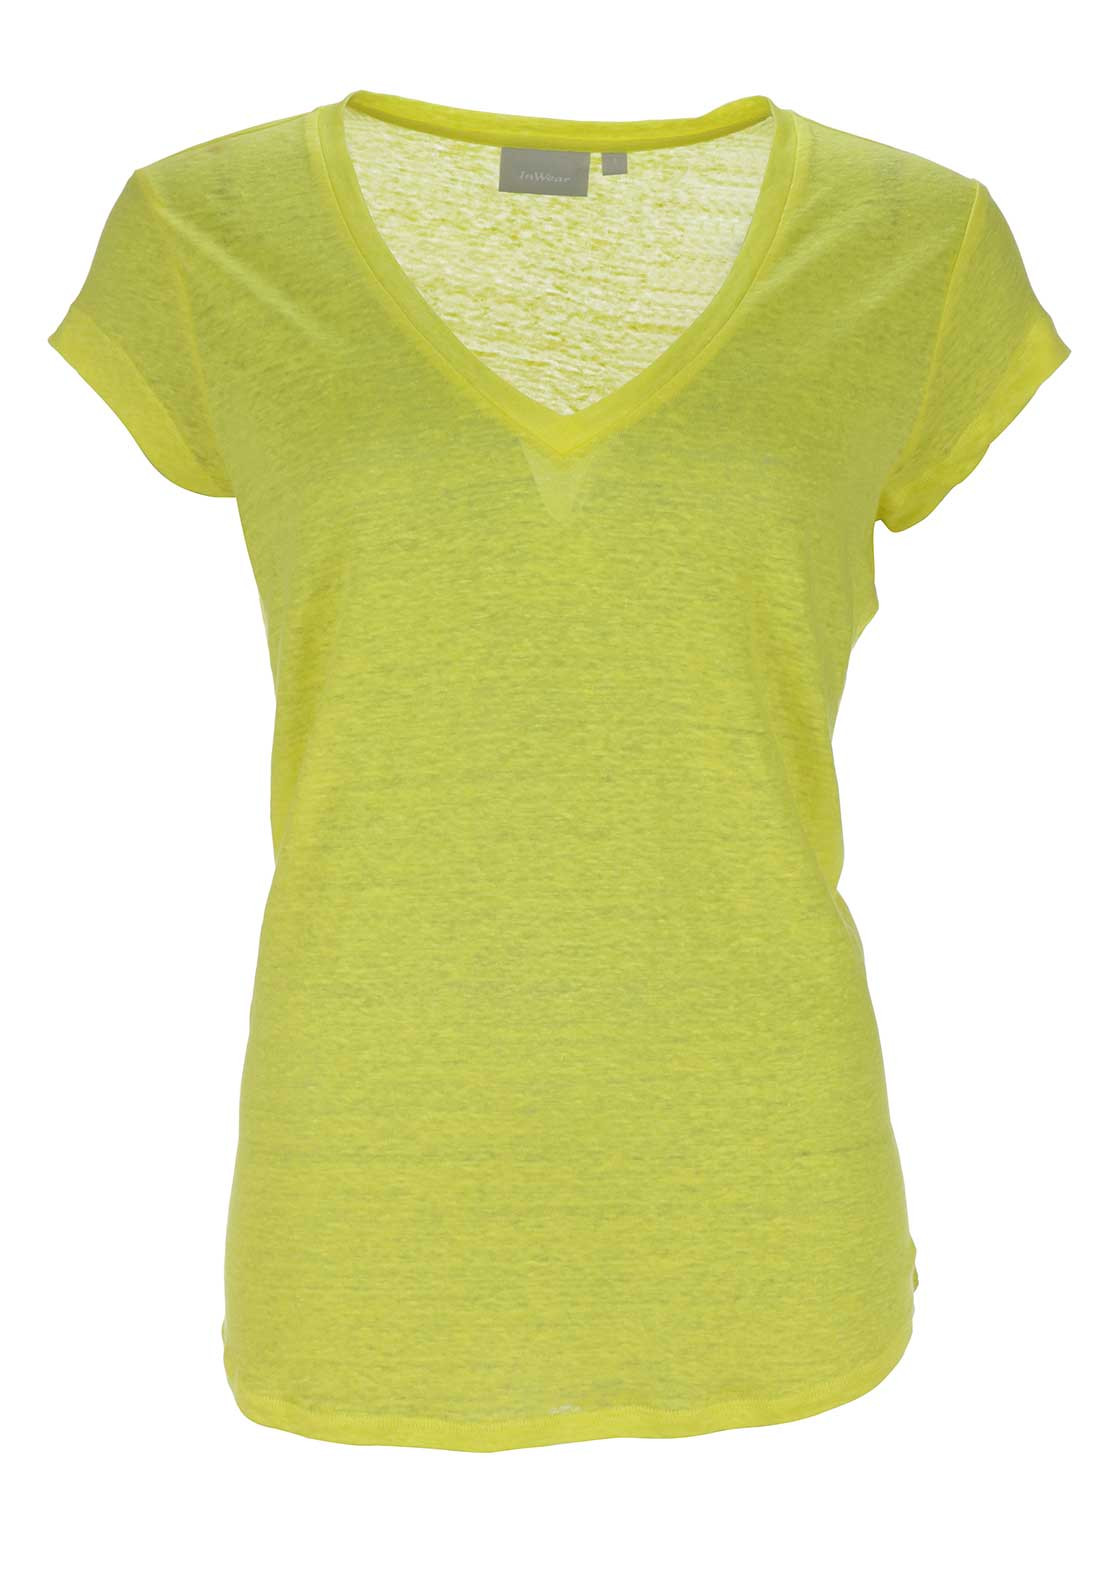 Inwear Caurals Short Sleeve T-Shirt, Yellow